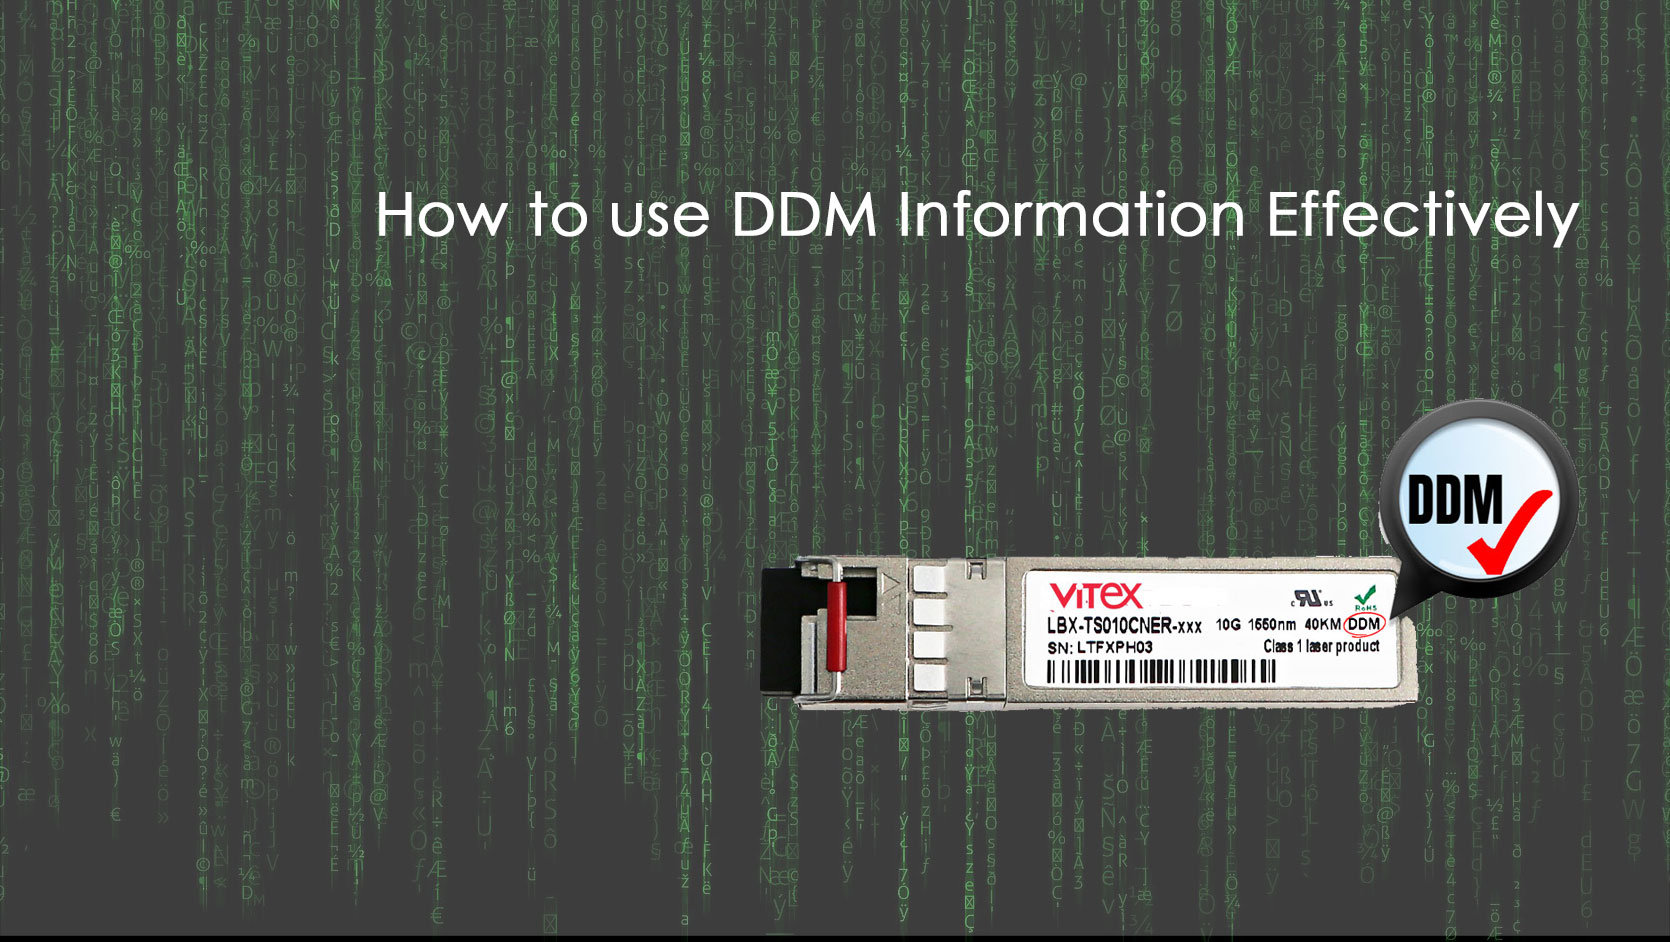 How to use Digital Diagnostic Monitoring information effectively?